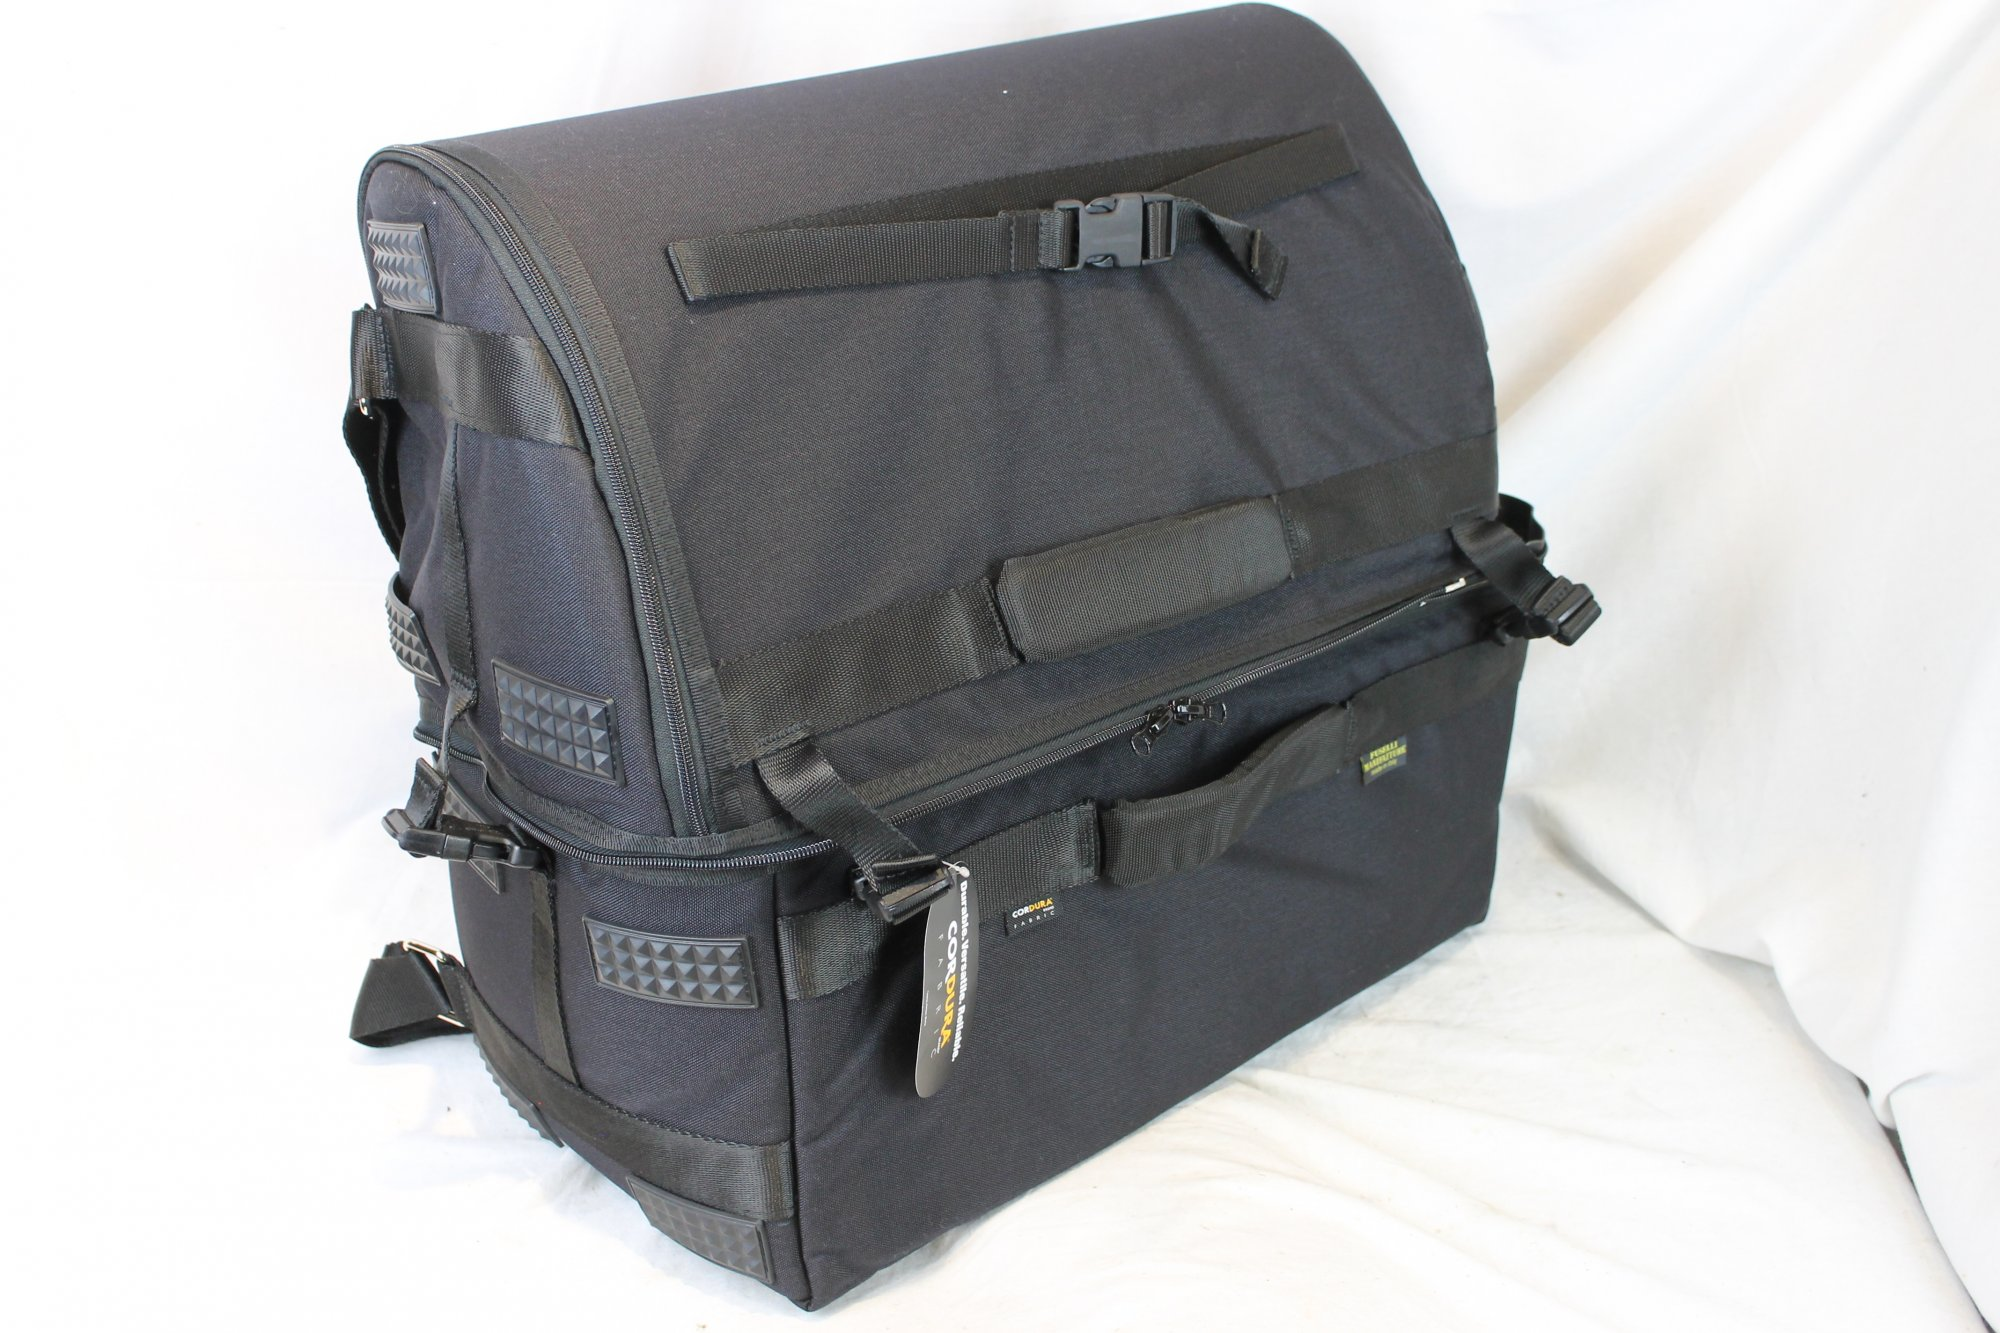 NEW Black Fuselli Jet Set Gig Bag for Accordion 19.5 x 20.5 x 10 fits Standard and Free Bass Chromatic Button Accordion